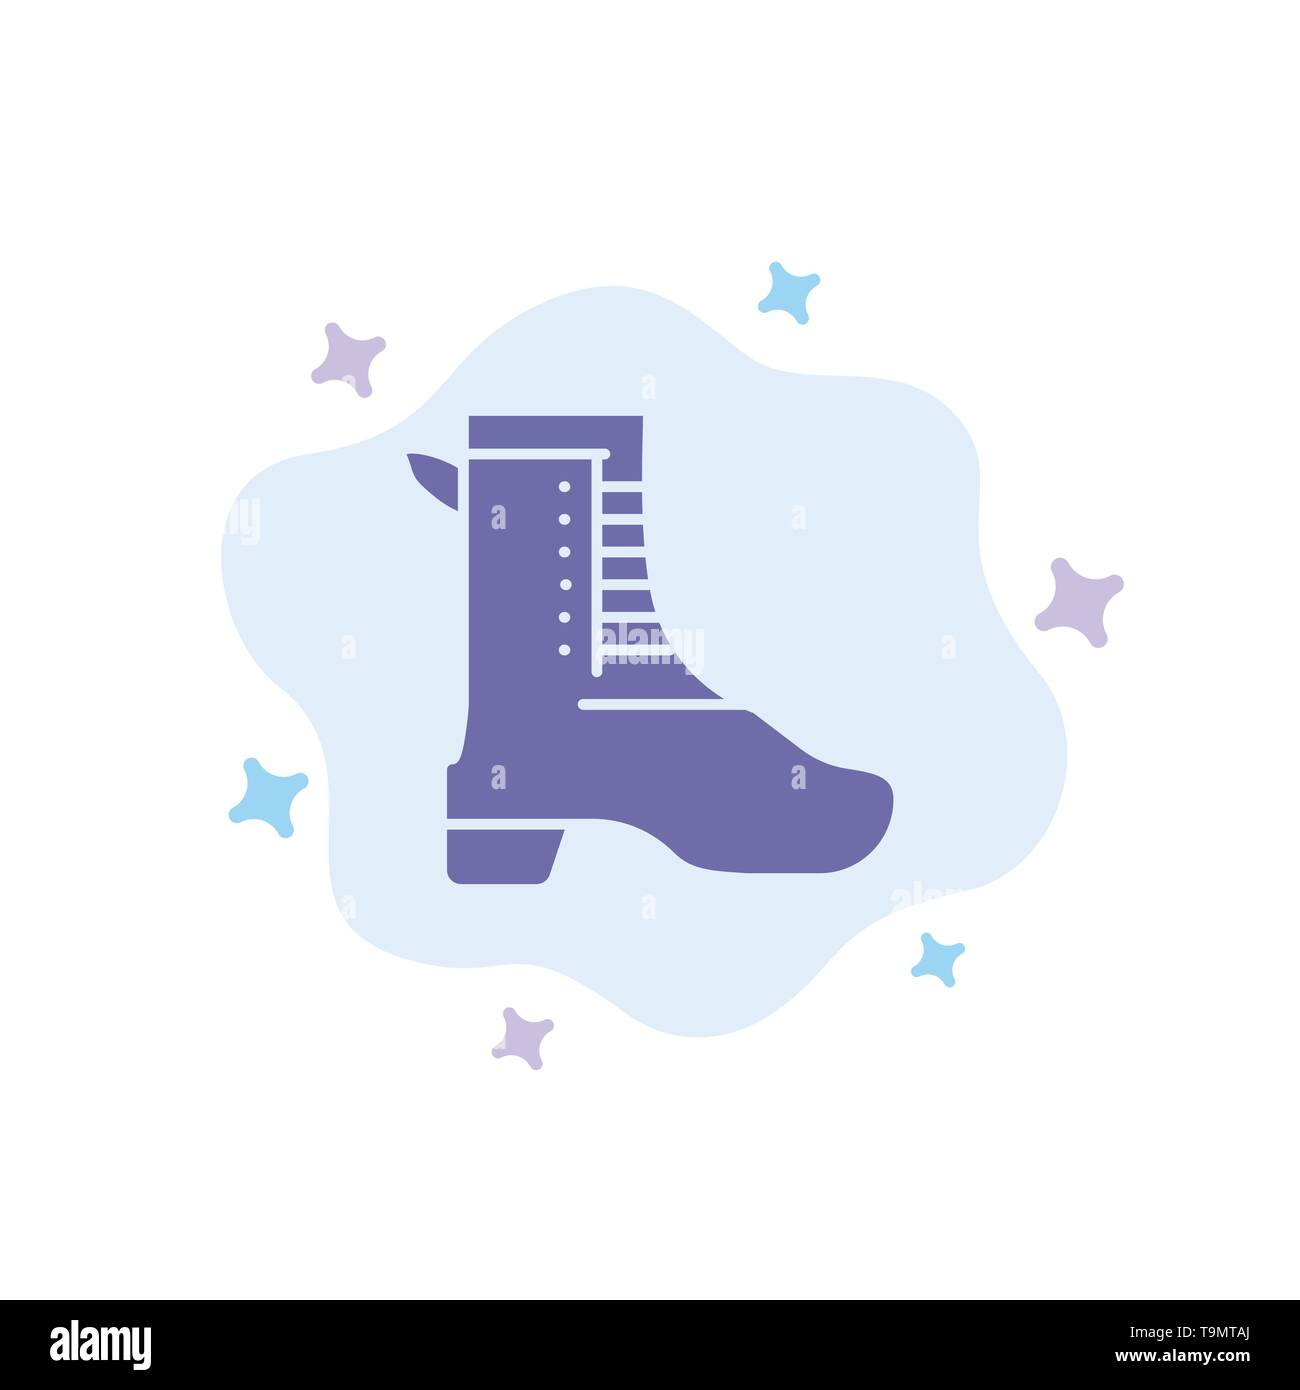 Activity, Running, Shoe, Spring Blue Icon on Abstract Cloud Background - Stock Image